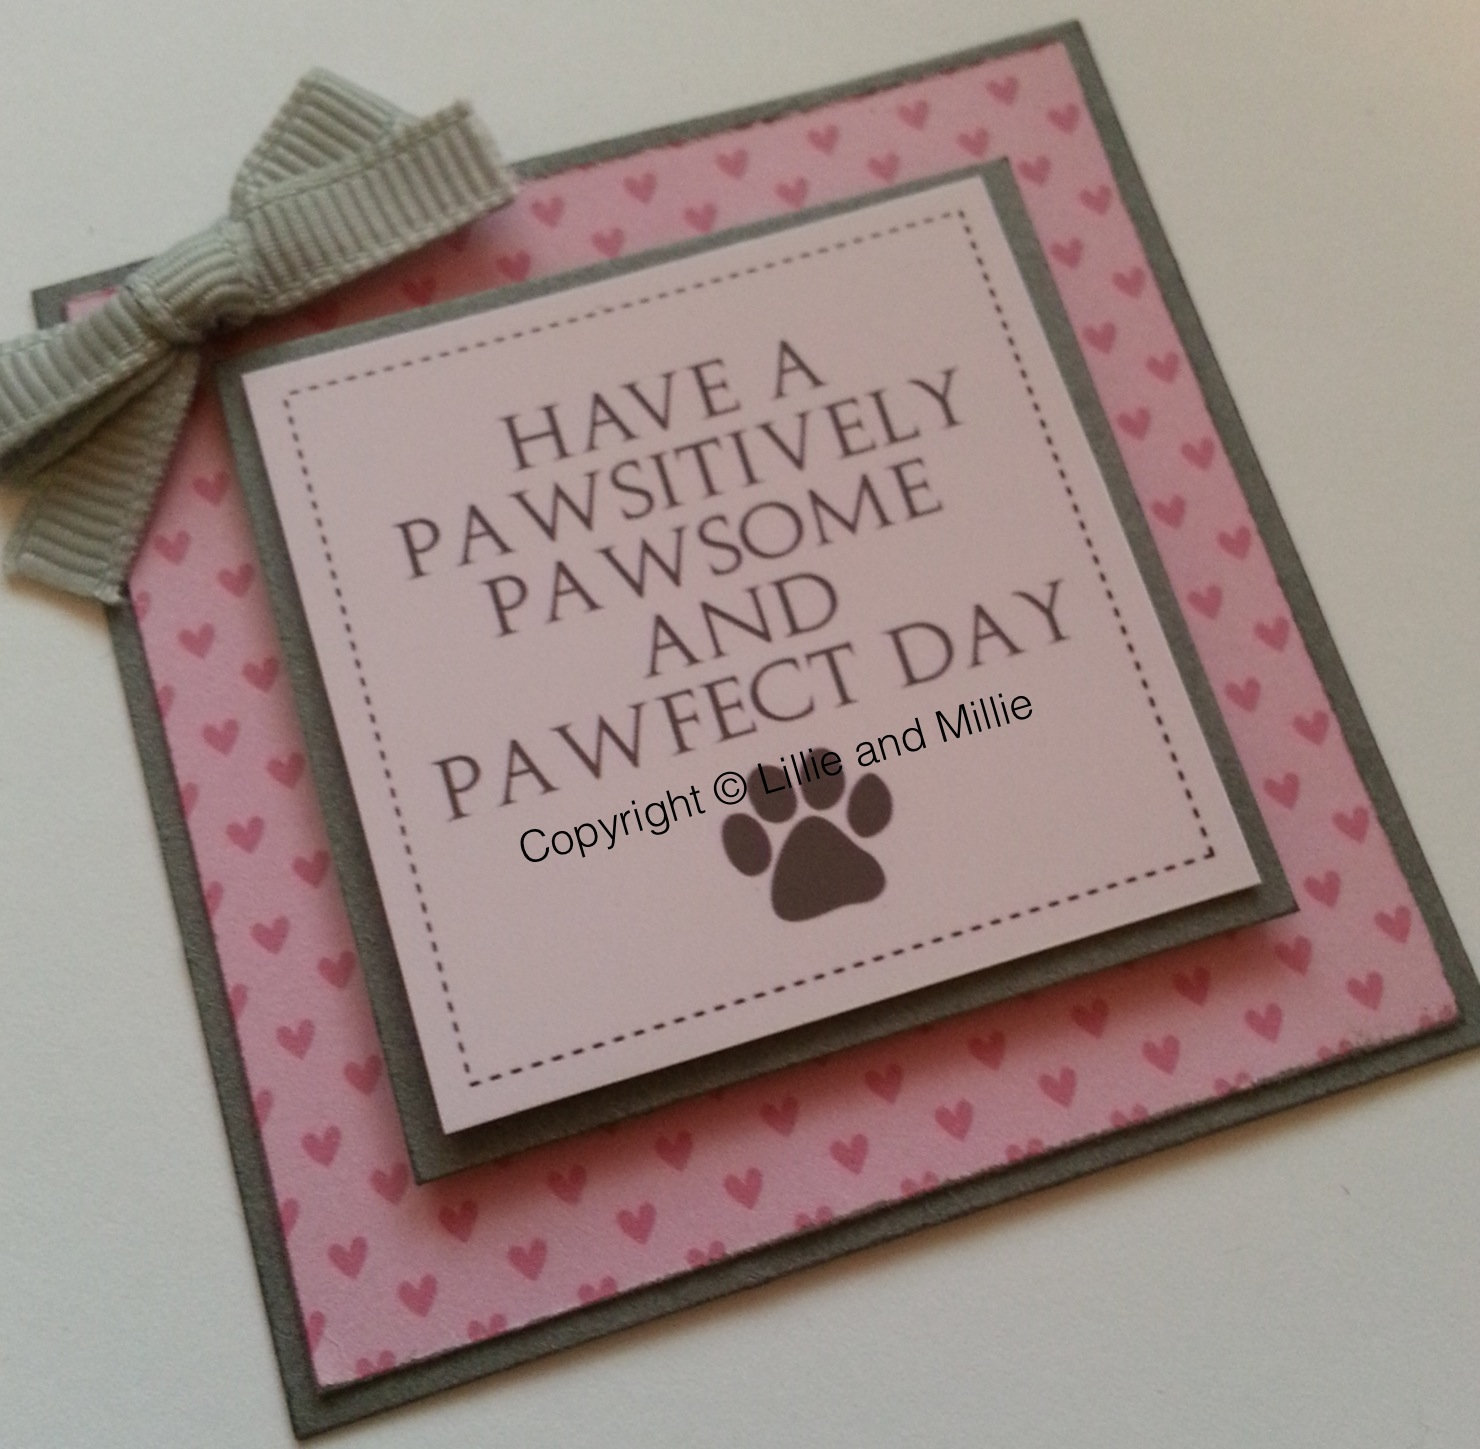 Have a Pawsitively Pawsome and Pawfect Day